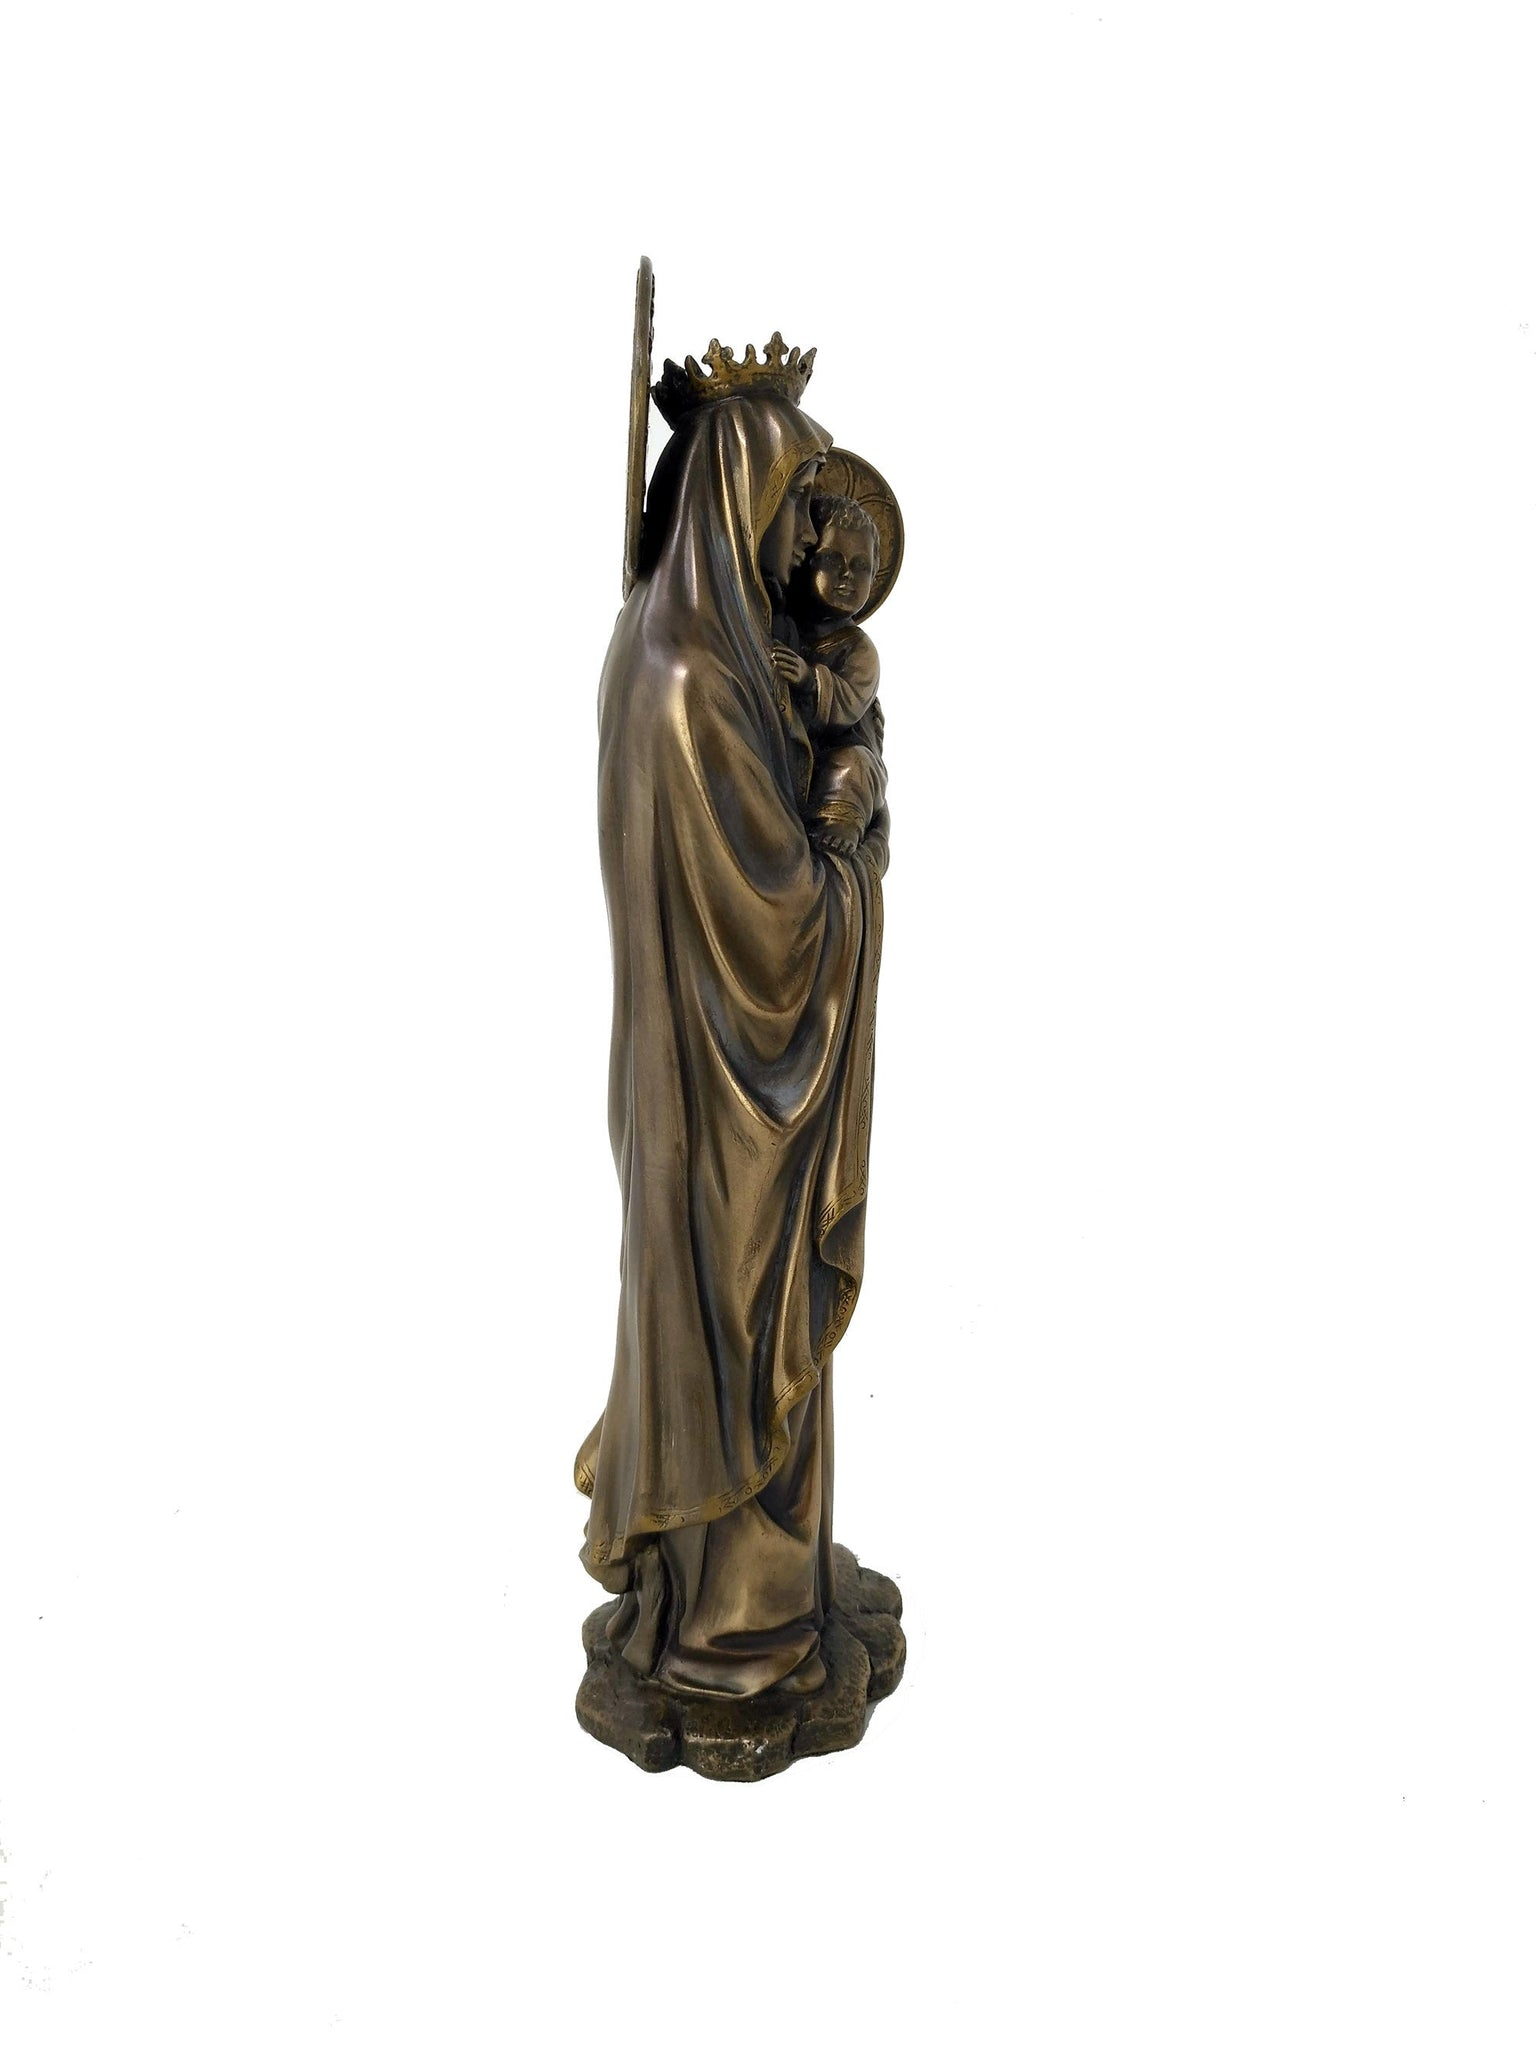 Our Lady of Mount Carmel Statue - Virgin Mary patroness of the Carmelite Order Cold Cast Bronze Statue - Christian Home Decor - 10.25''/26cm